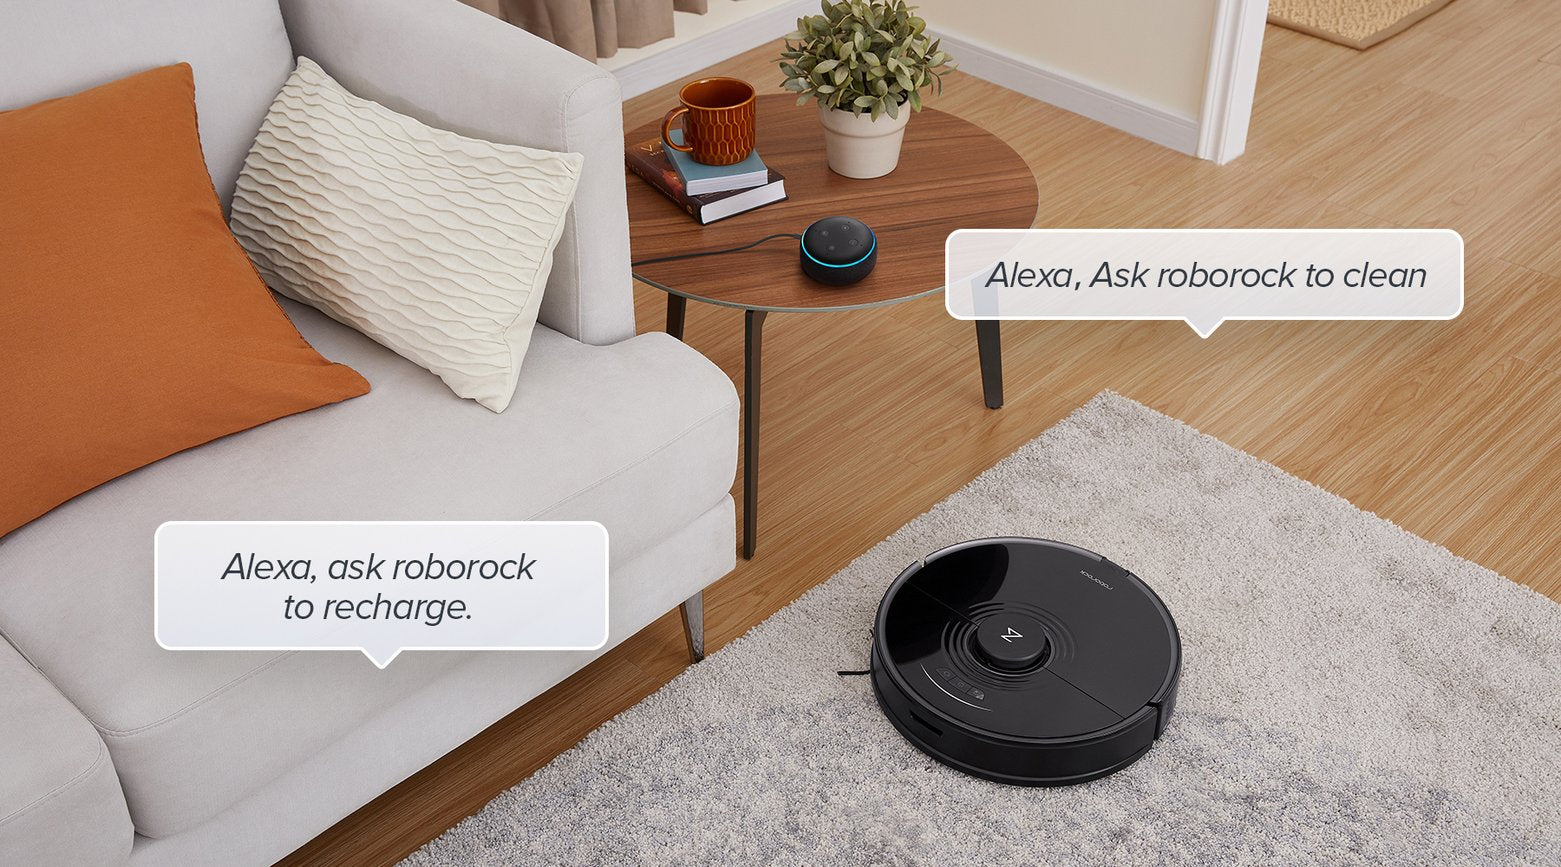 Voice command Roborock S7 via Amazon Alexa, Google Home, and Siri shortcuts